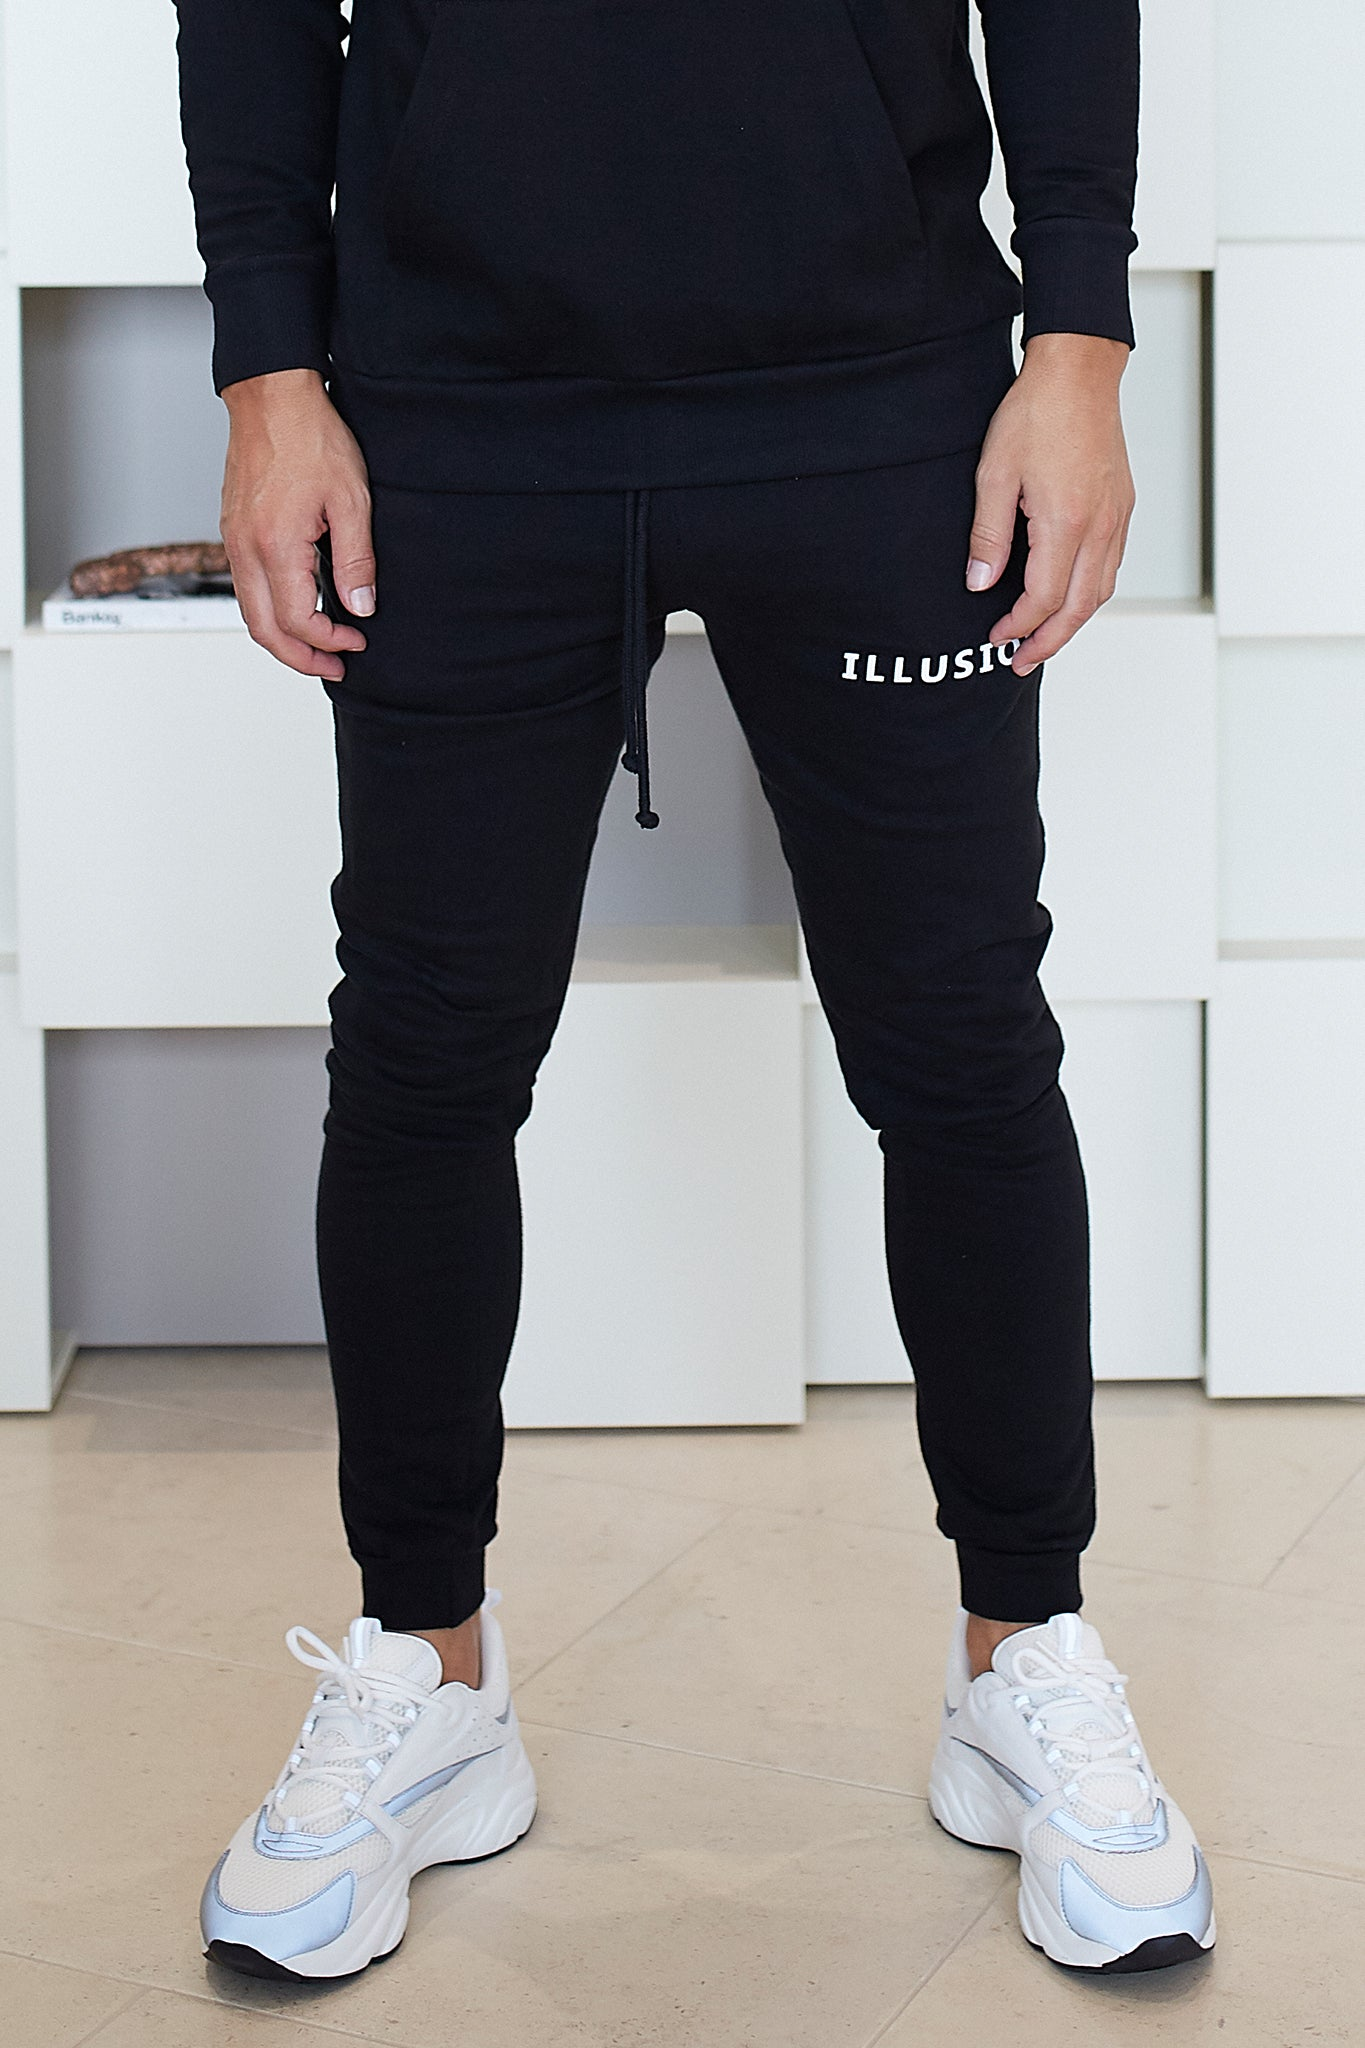 BLACK ESSENTIALS JOGGERS - Illusion Attire